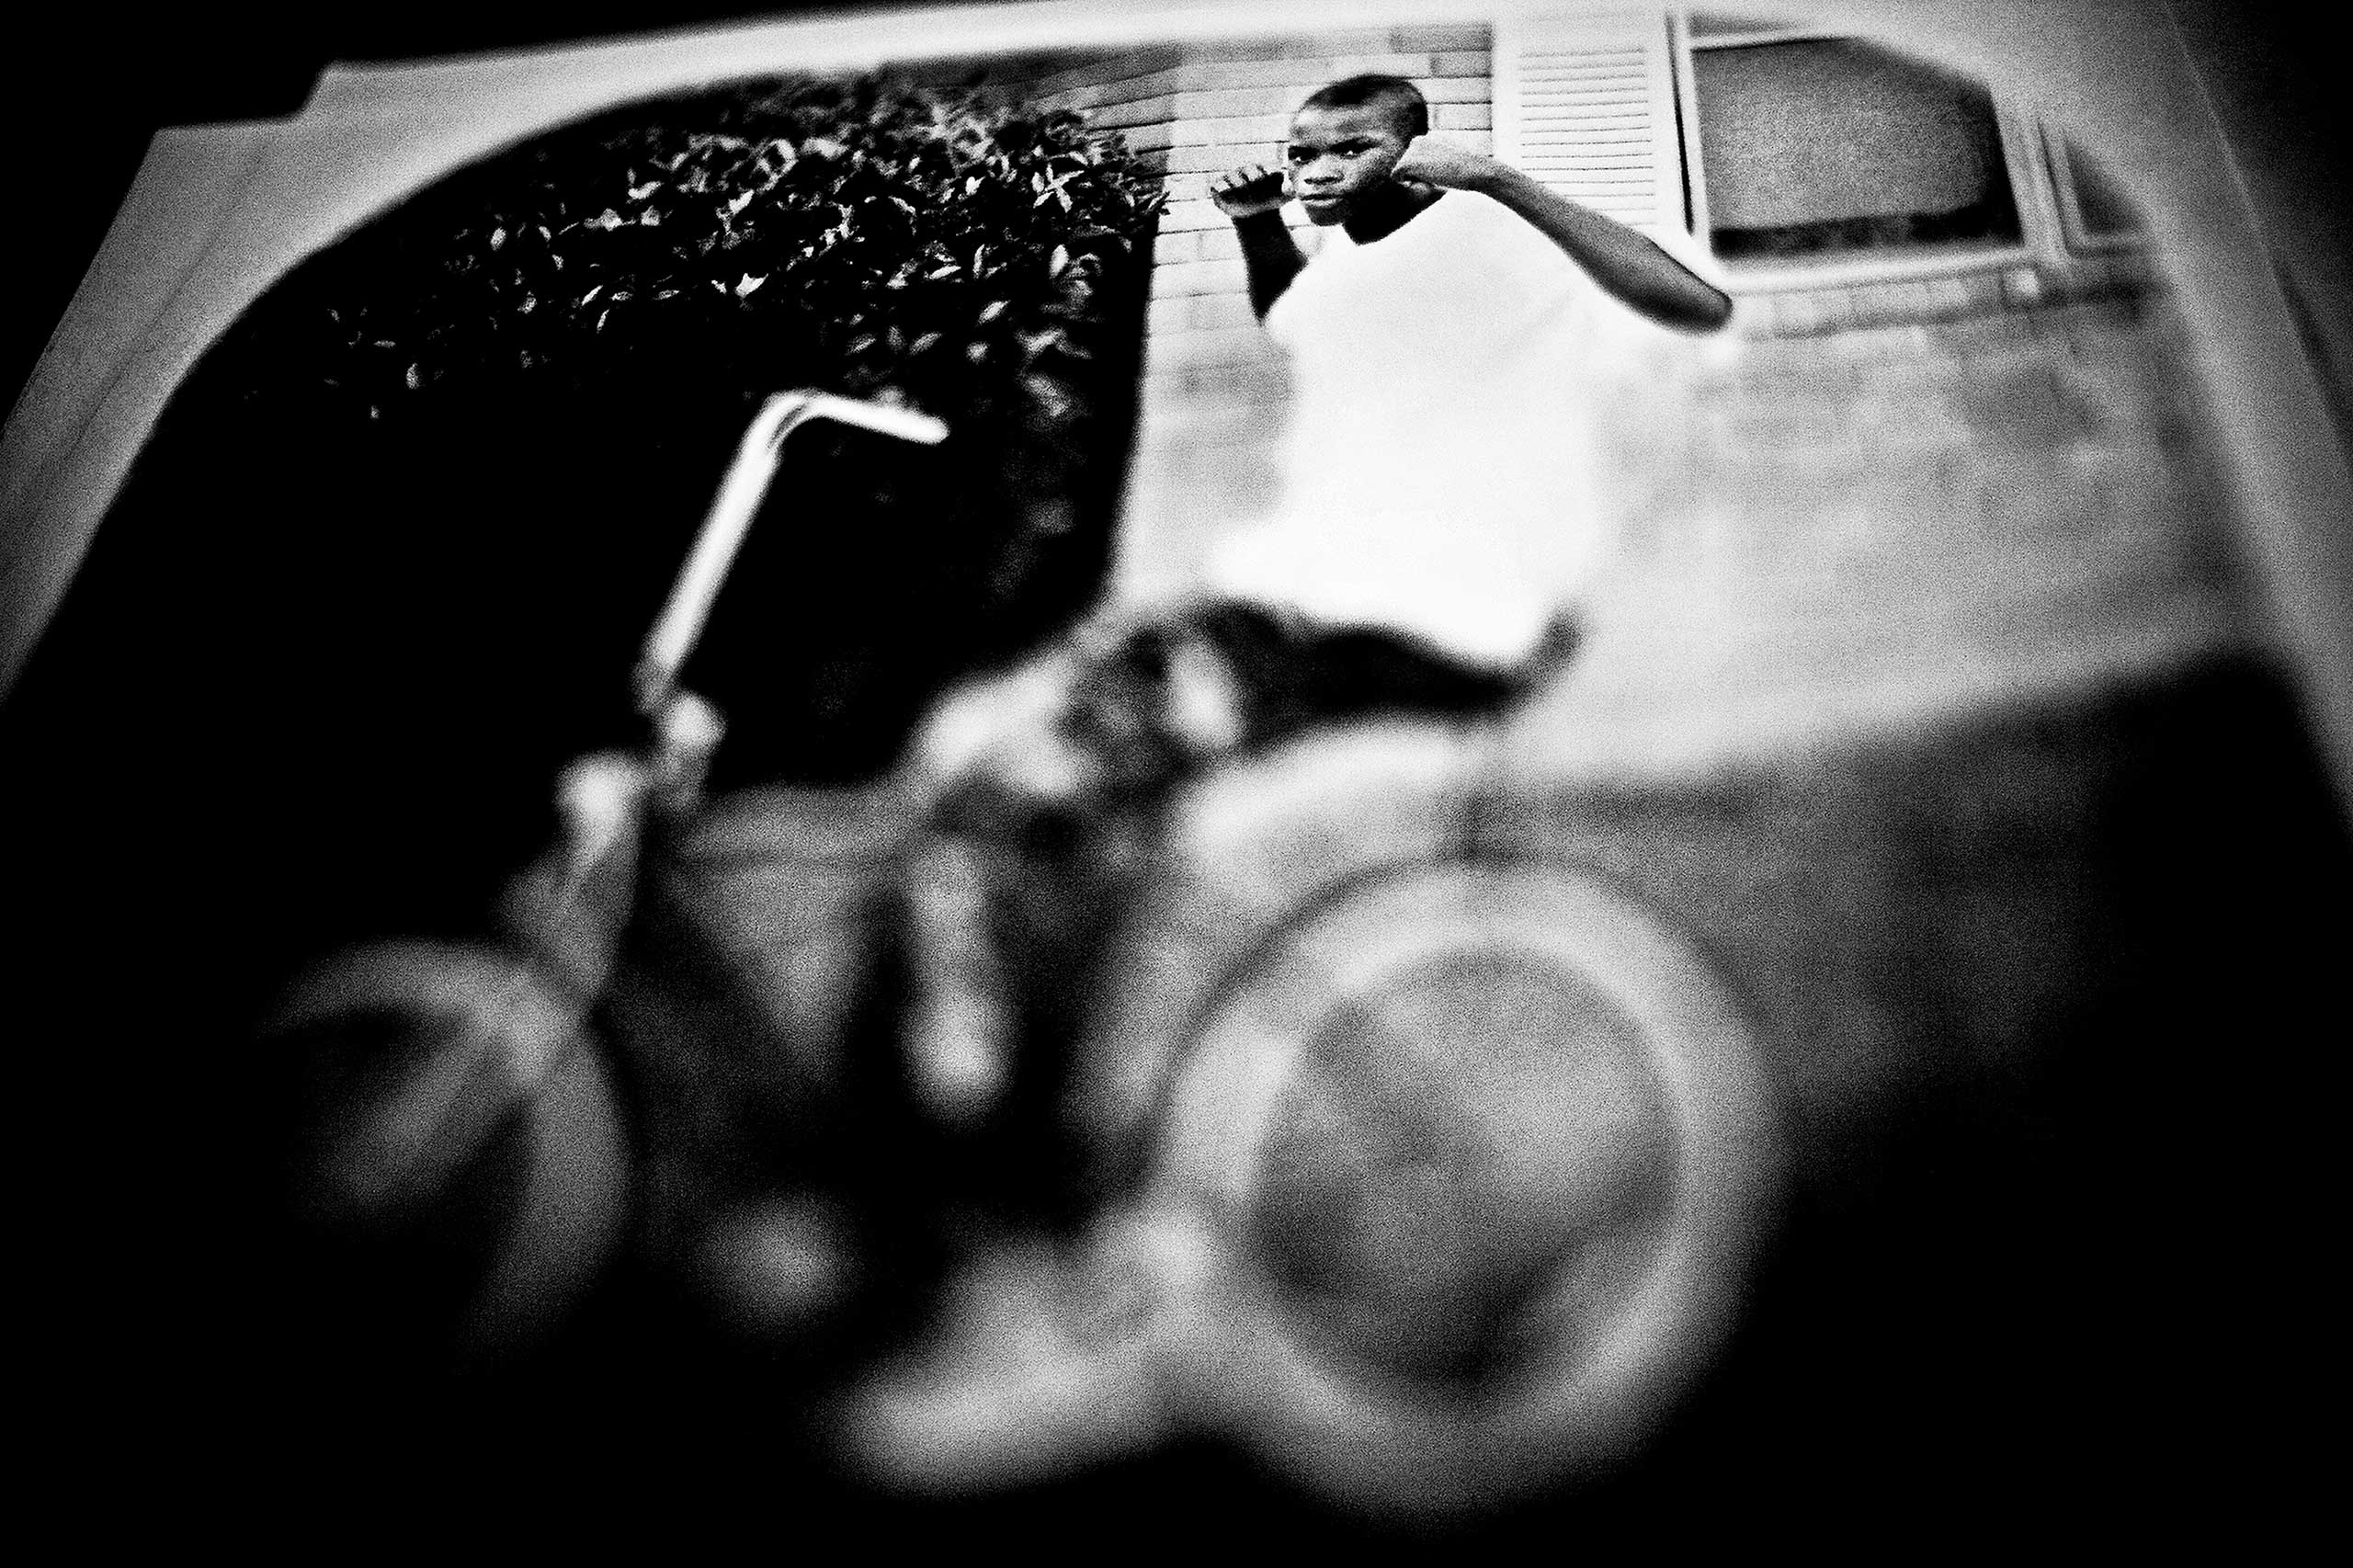 Victims of violence are often memorialized with T-shirts made by their friends and relatives. This is a photograph of a victim for use in his memorial T-shirt. Lawndale, Chicago, 2008.